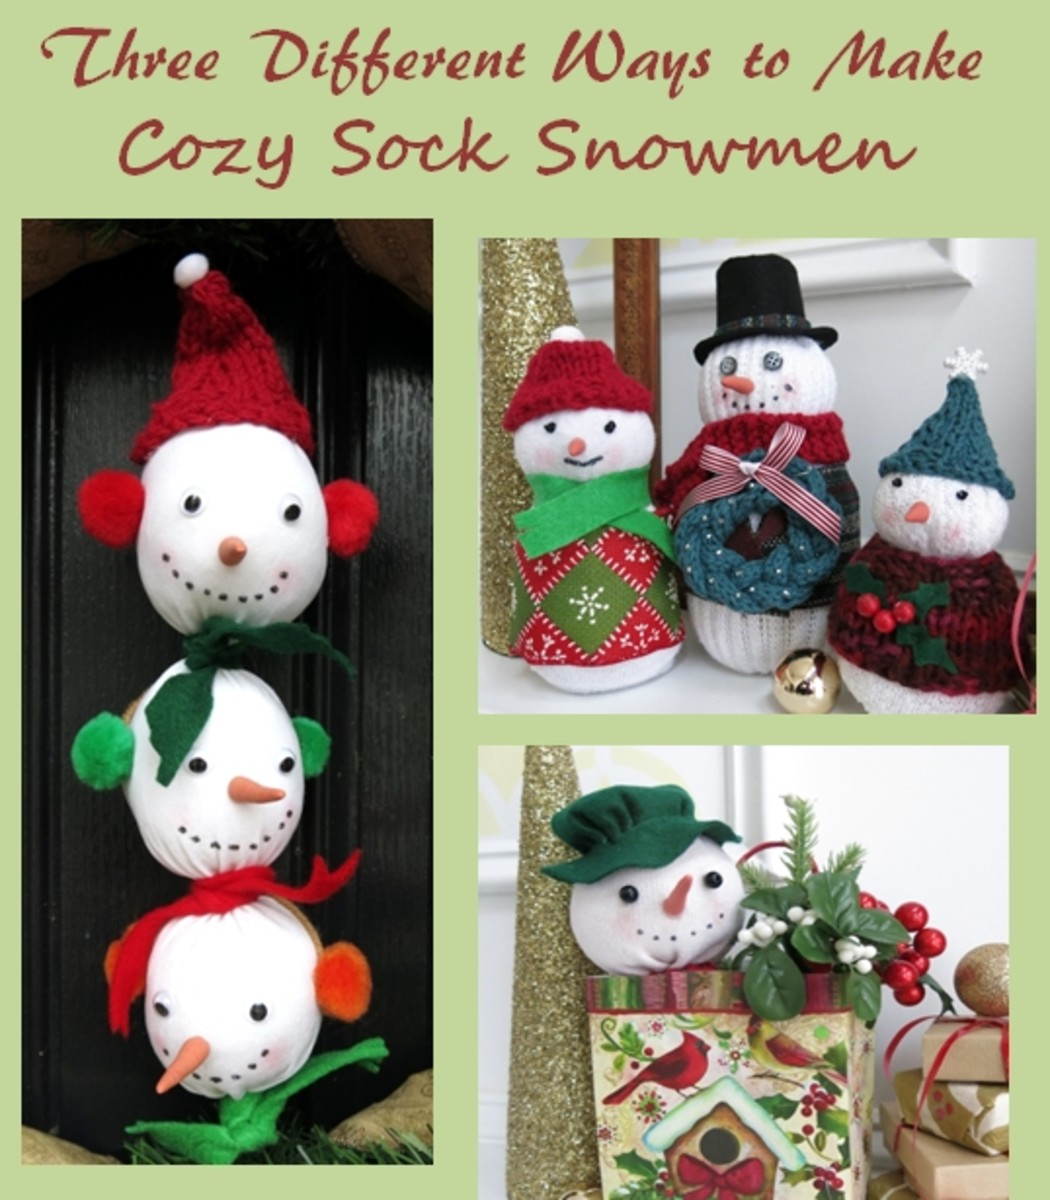 Three Different Ways to Make Sock Snowmen for Christmas and the Winter Season